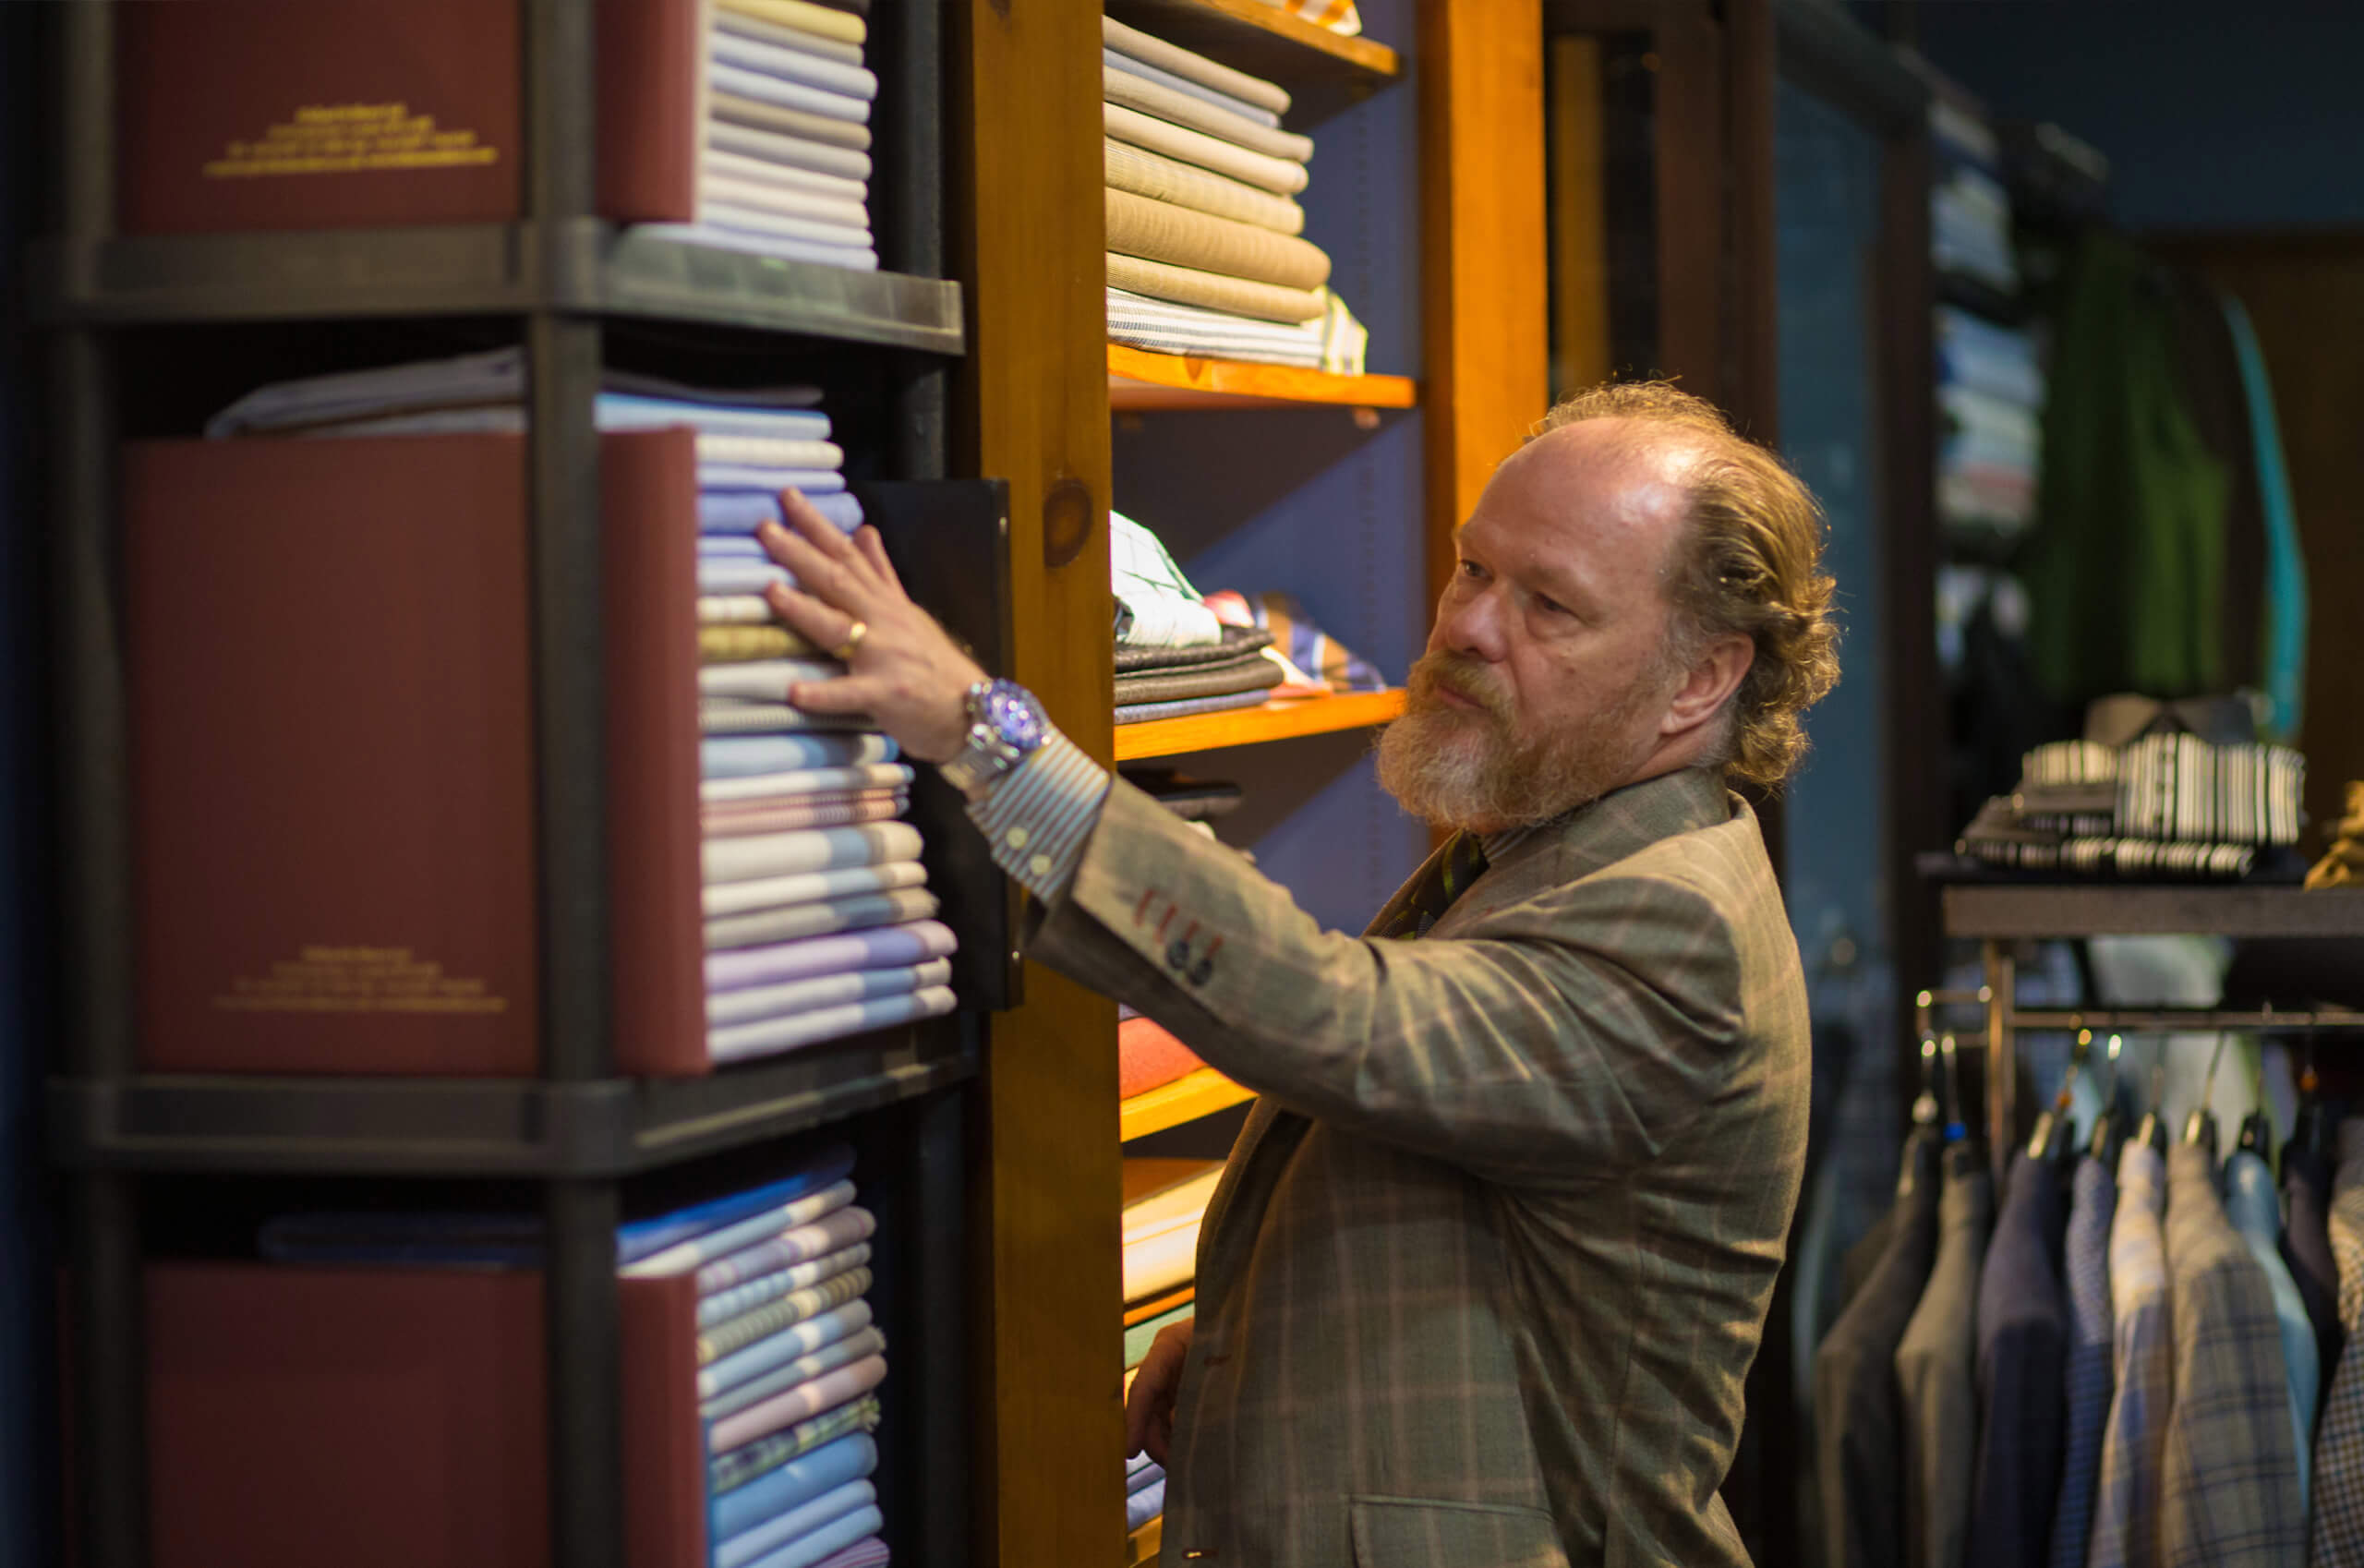 Antonio Salgado, the owner of the custom clothier – House of Salgado.